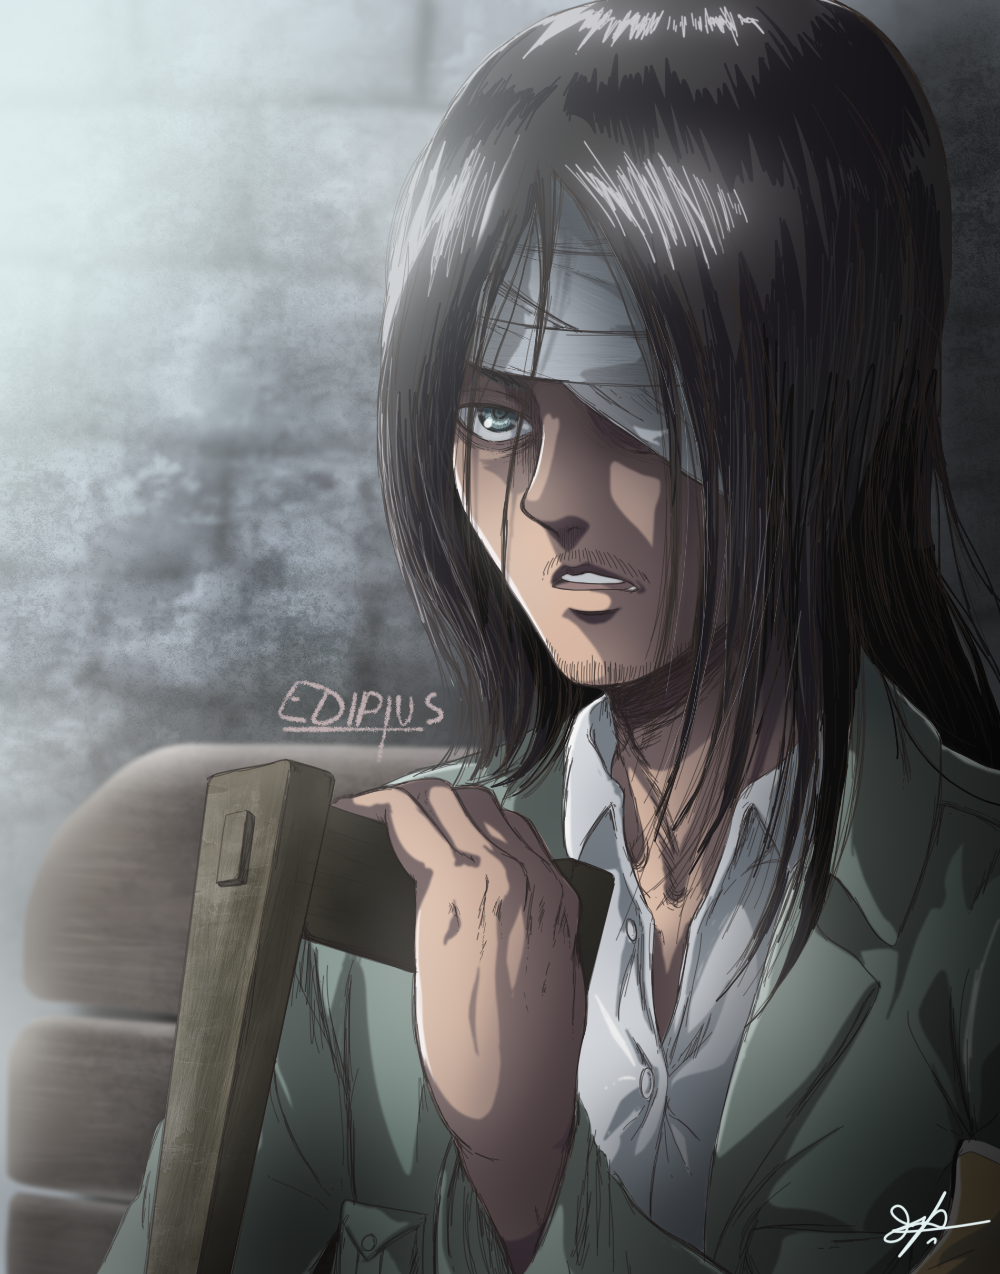 Pin By Charliecarls1 On Attack On Titan Attack On Titan Anime Attack On Titan Eren Attack On Titan Art